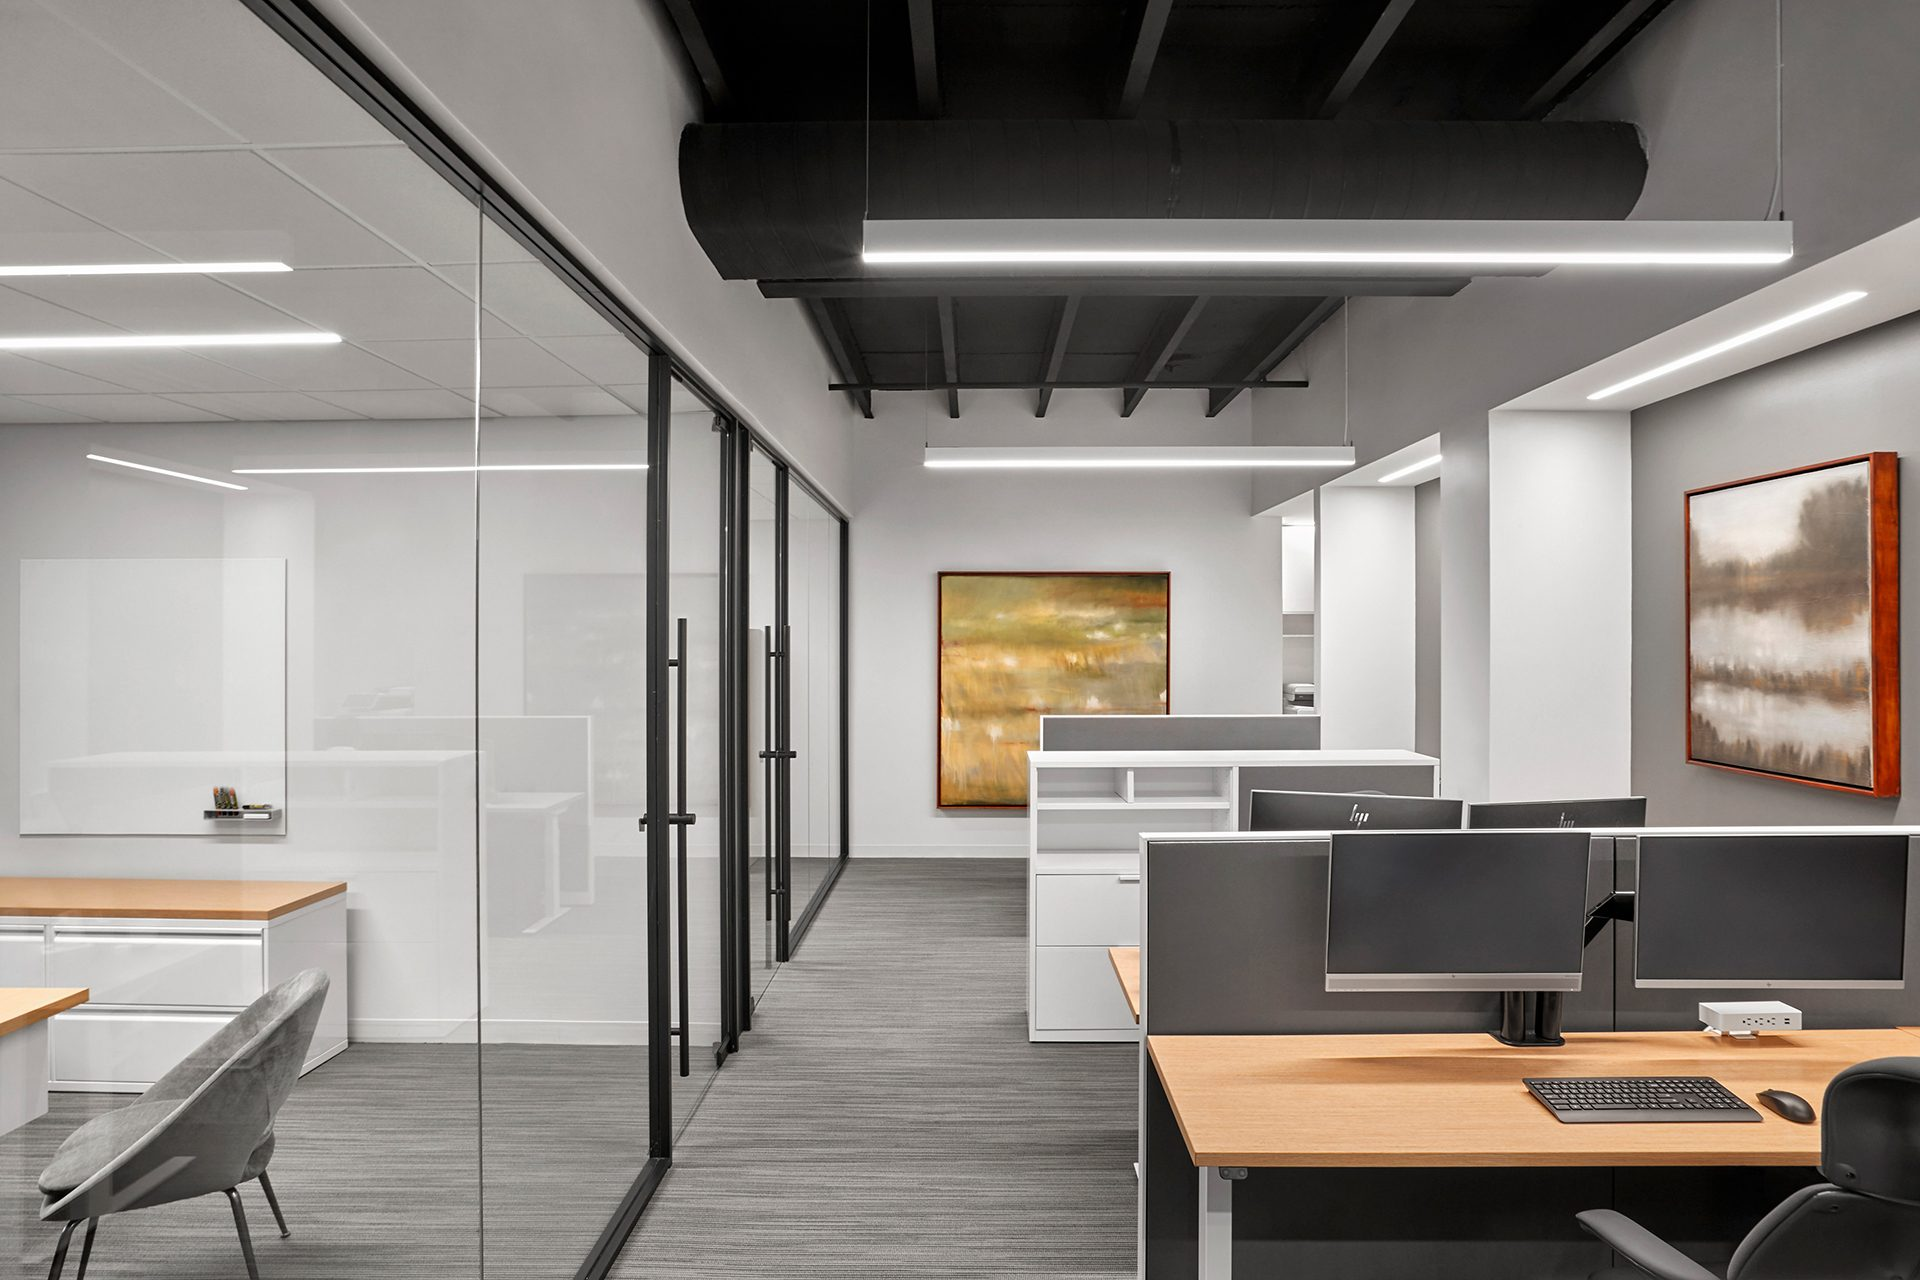 Energy Capital Partners (ECP) open workspace and private offices